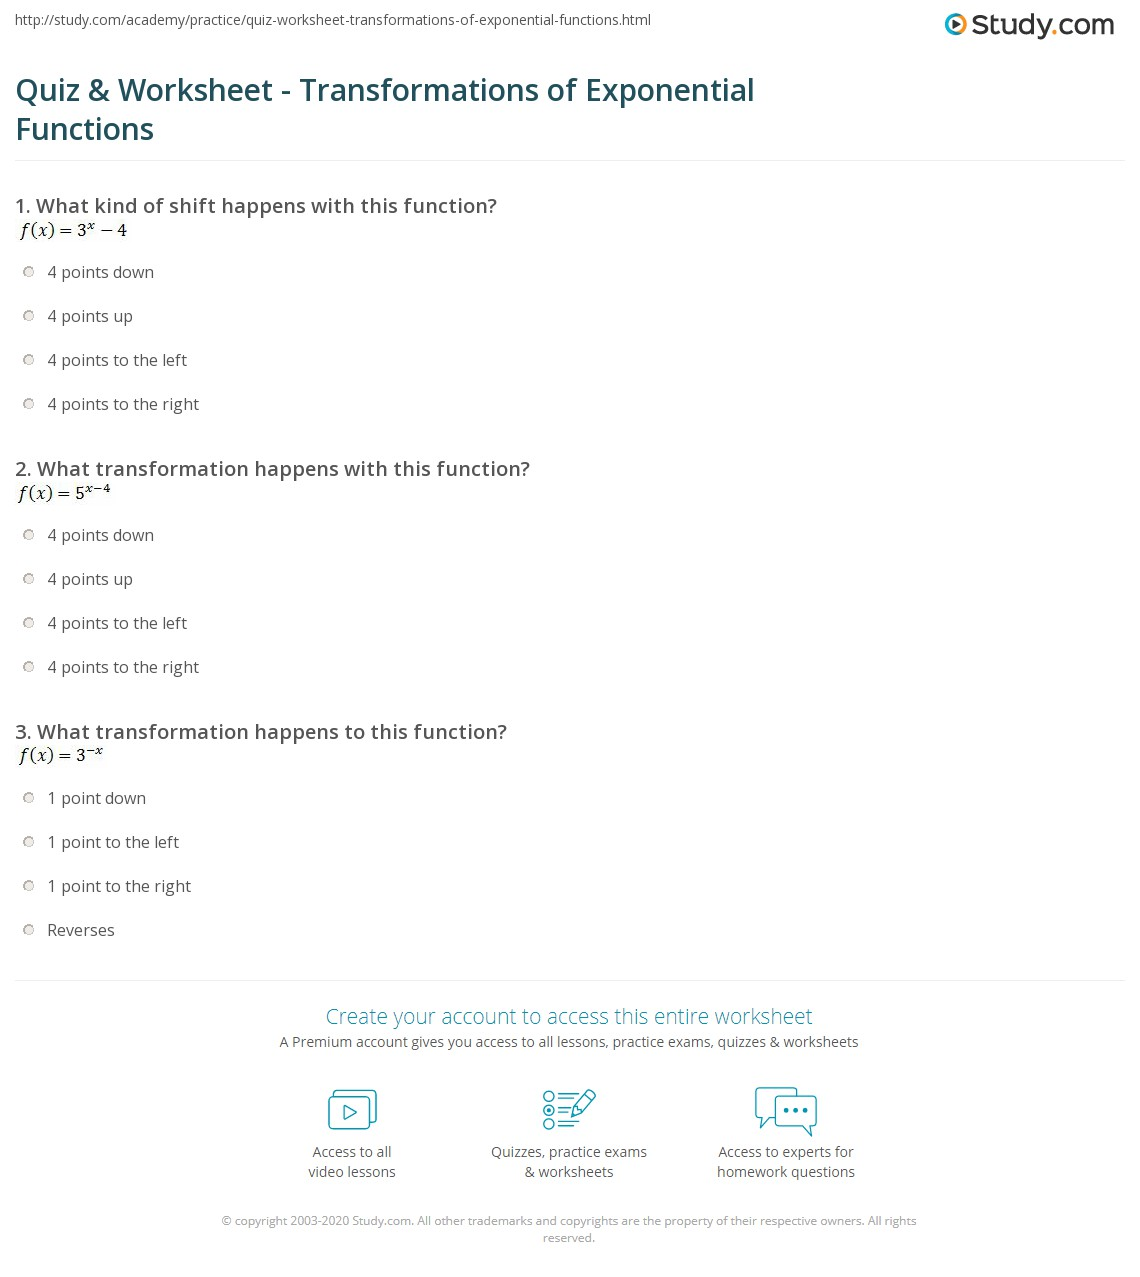 Printables Exponential Functions Worksheet quiz worksheet transformations of exponential functions print transformation examples summary worksheet